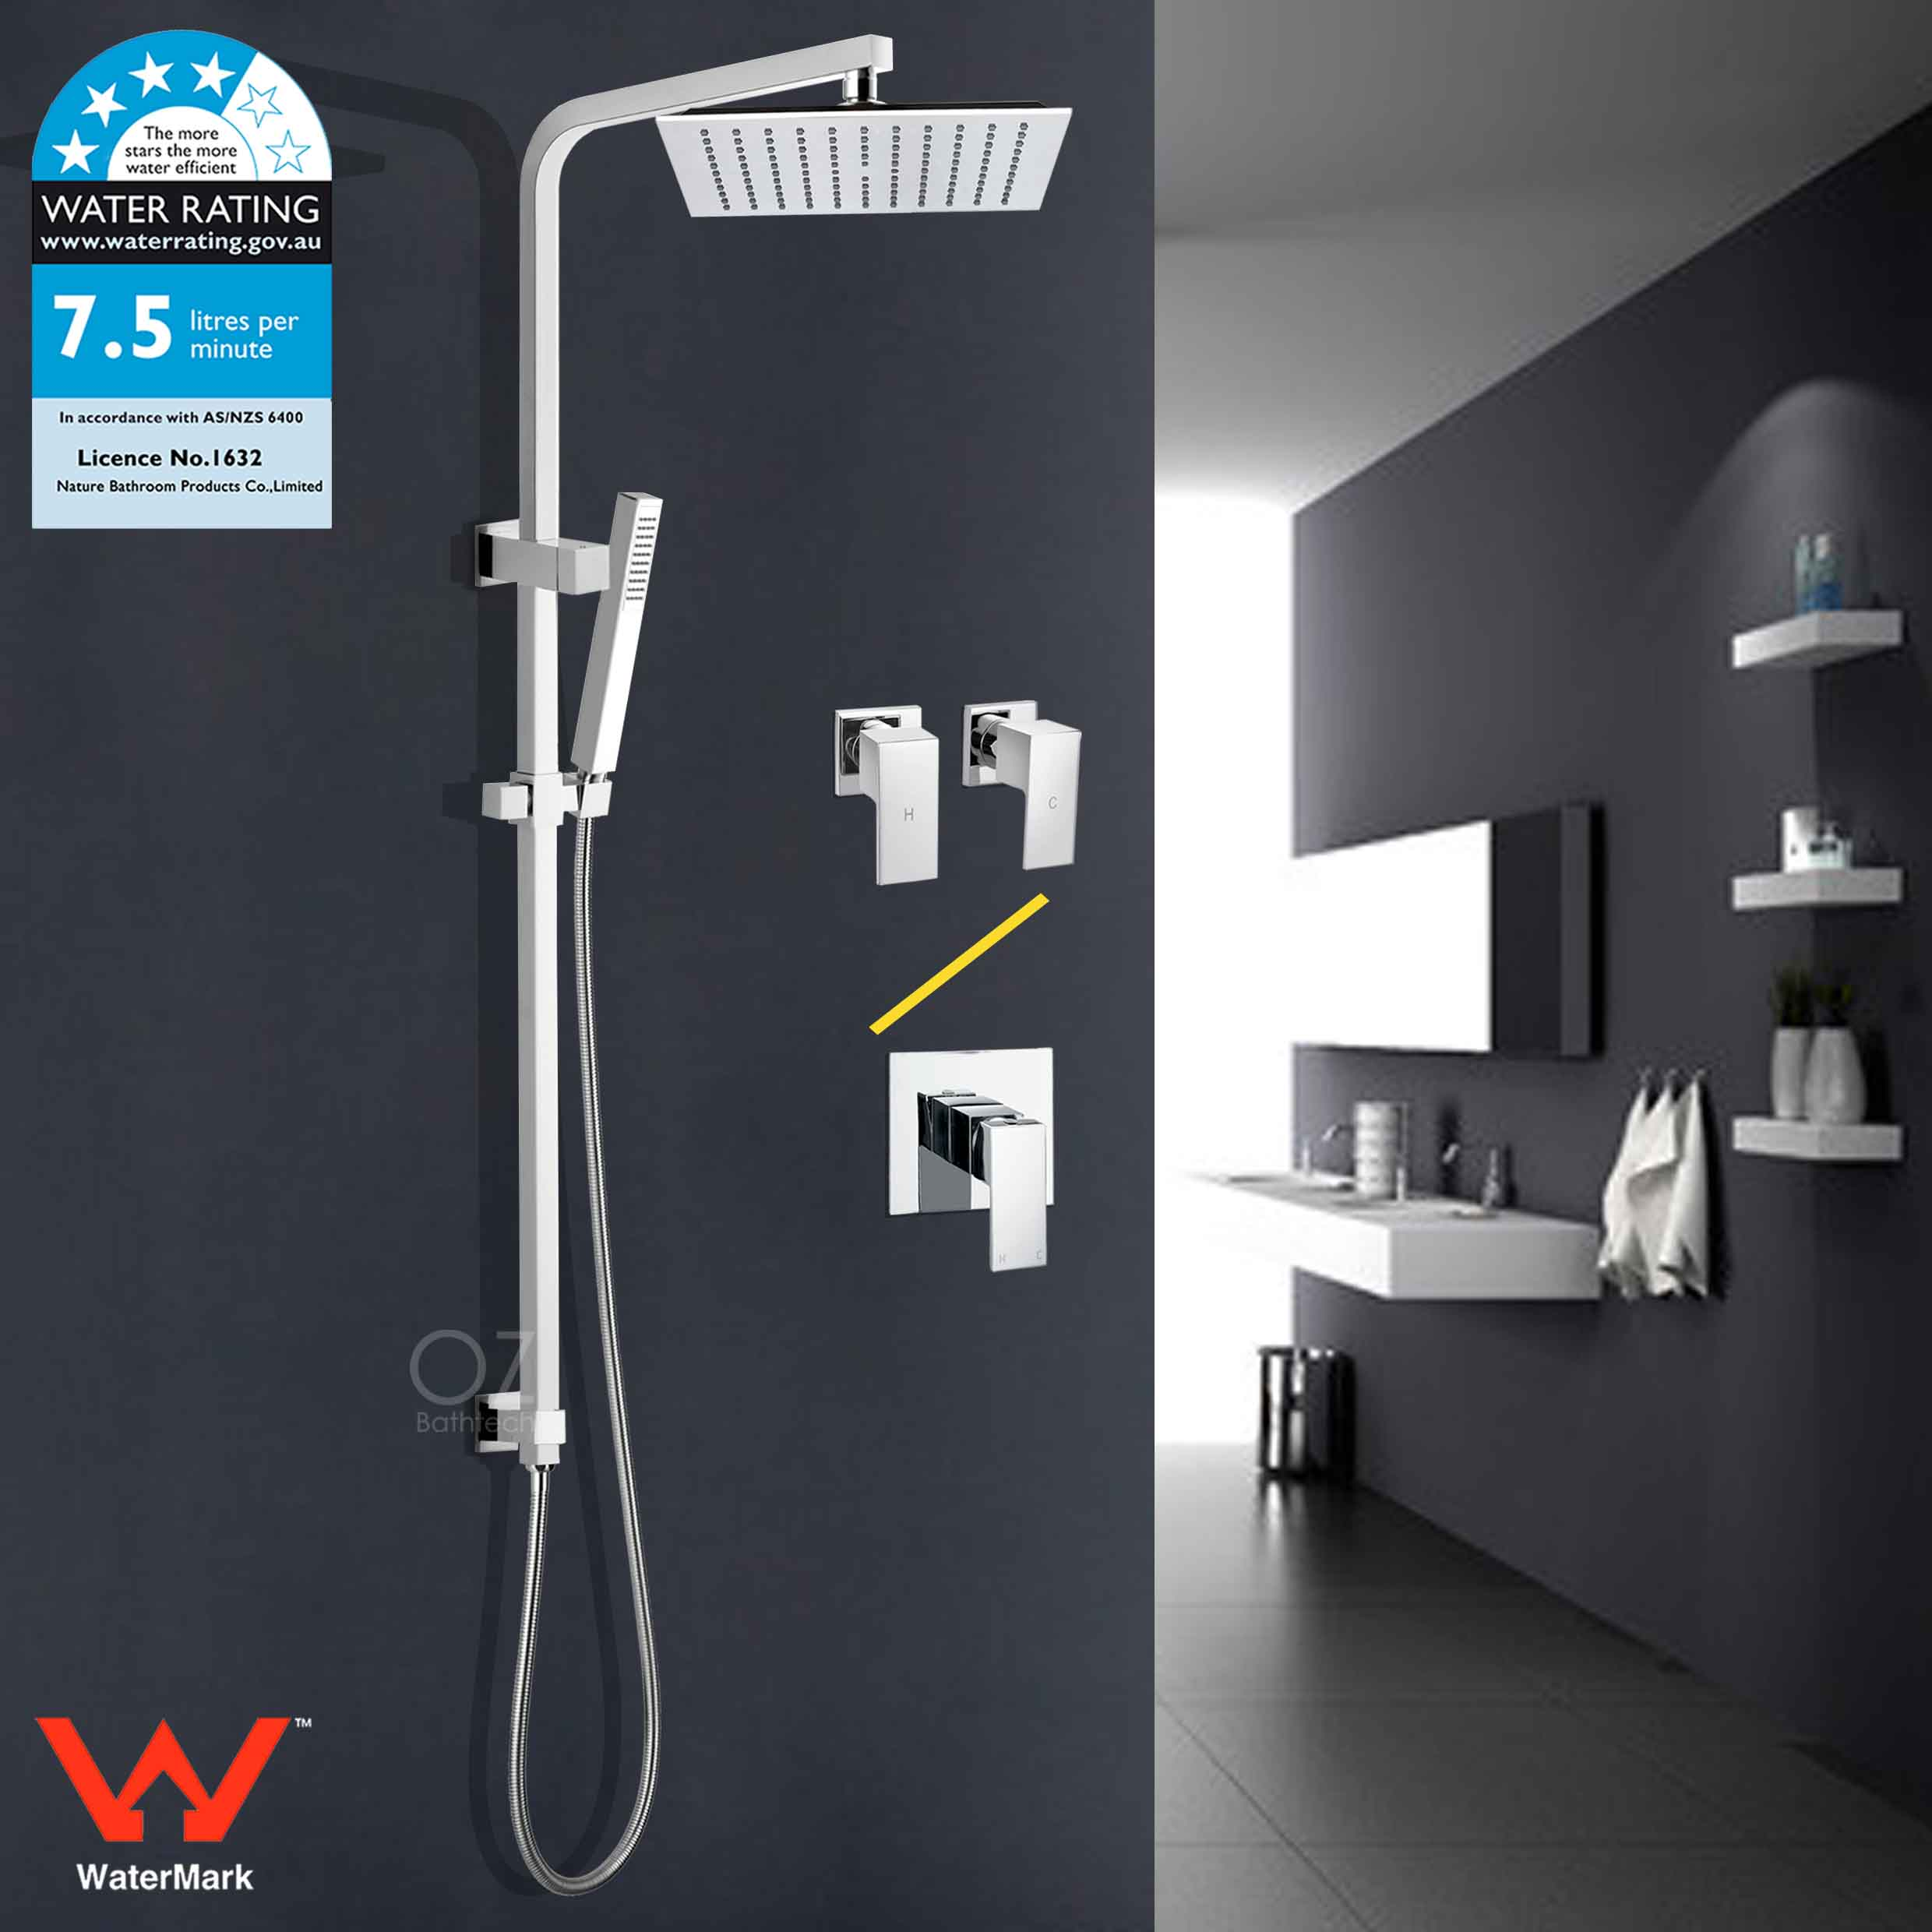 Details About Wels Square 10 Rain Shower Head Handheld Bracket Rail Arm Combo Set Mixer Tap